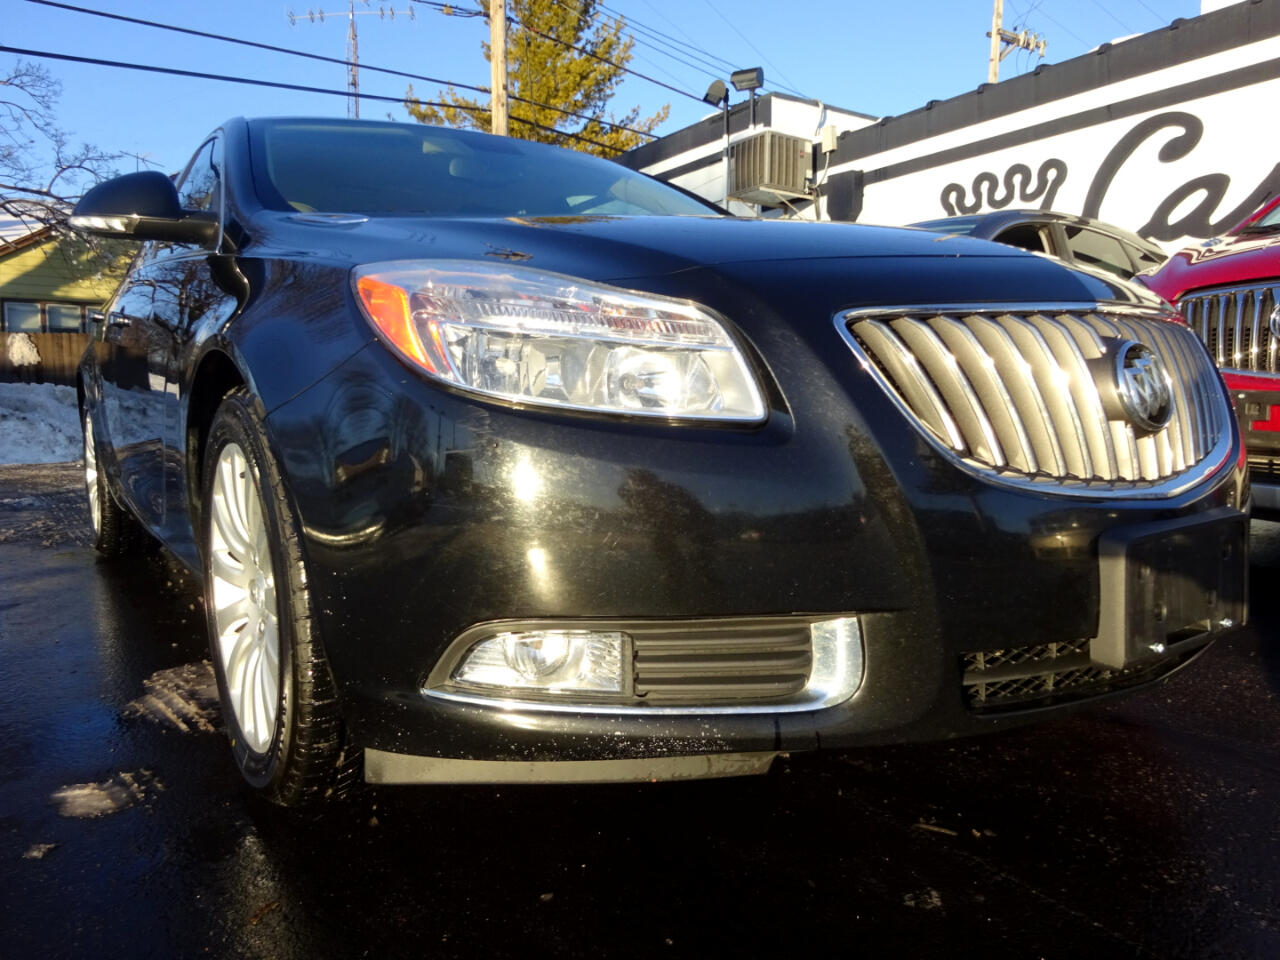 Buick Regal 4dr Sdn Turbo Premium 1 2013